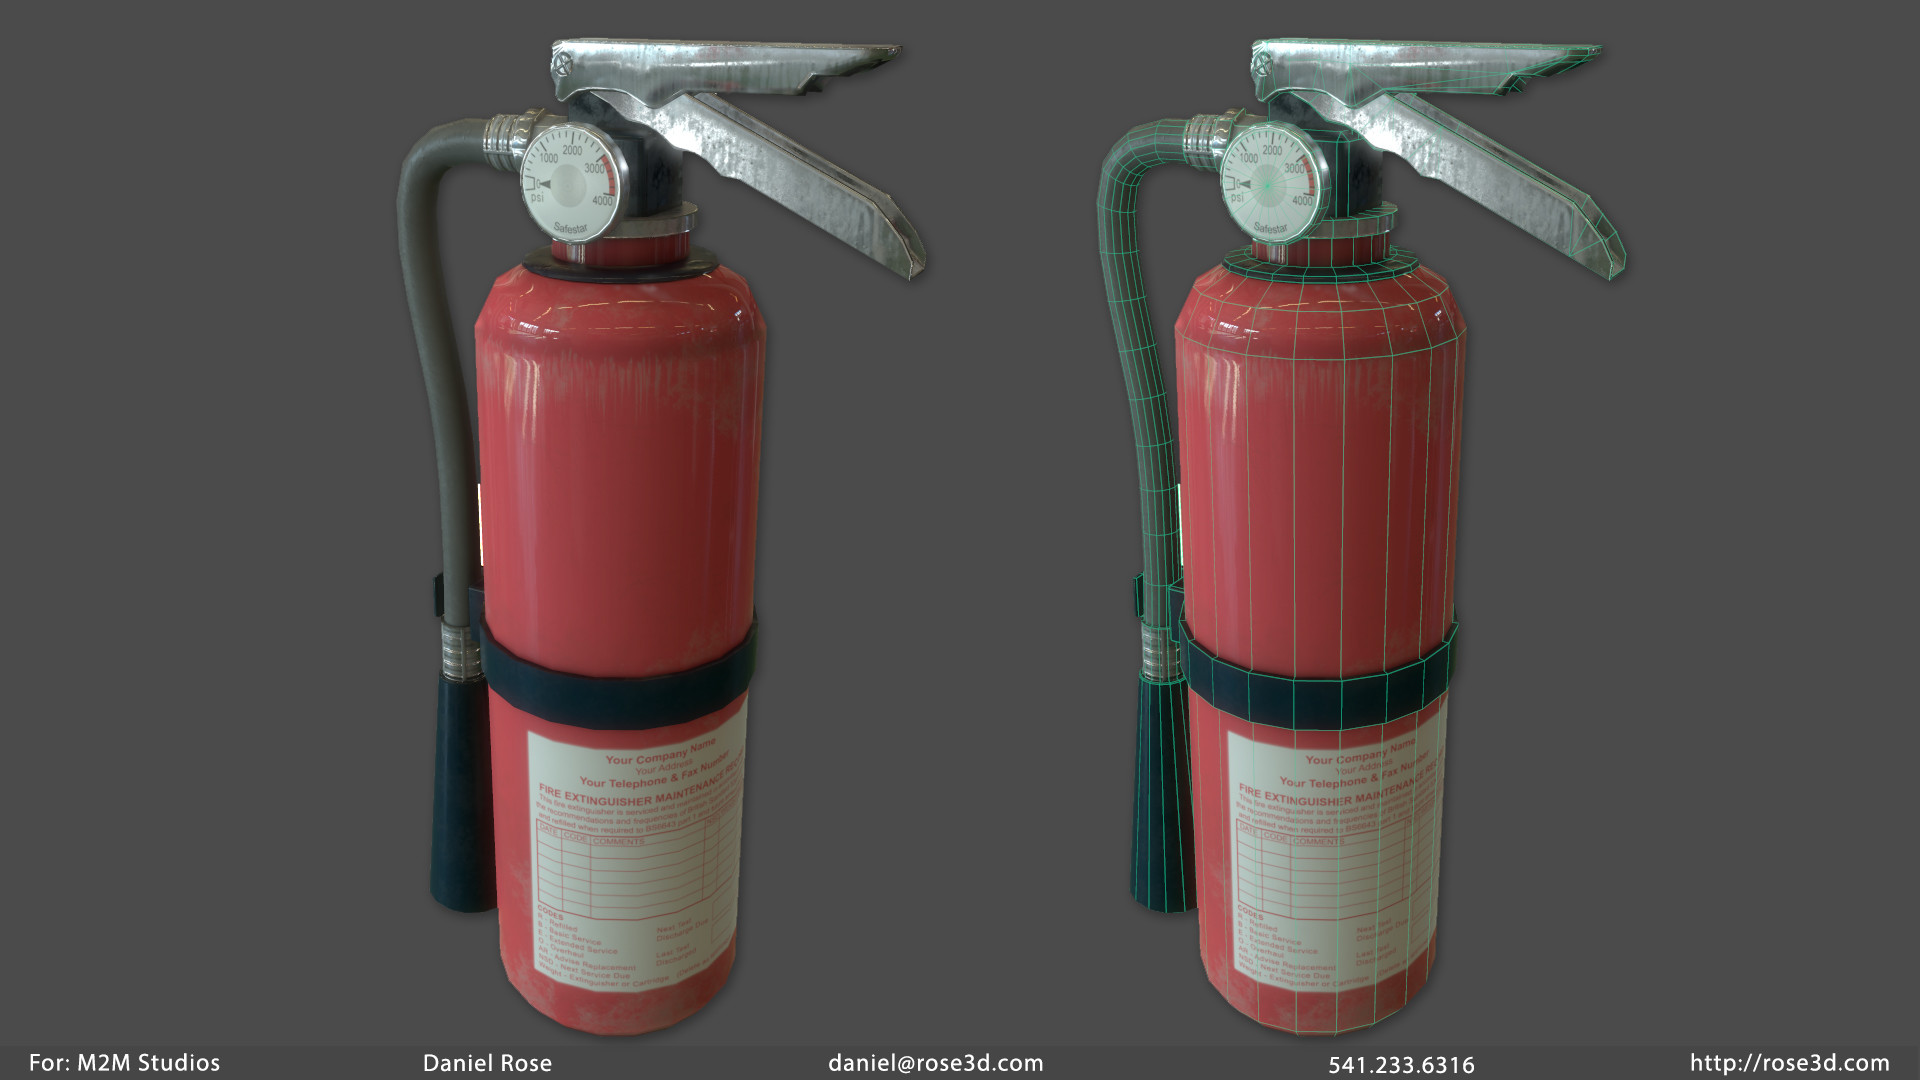 Daniel rose extinguisher prop